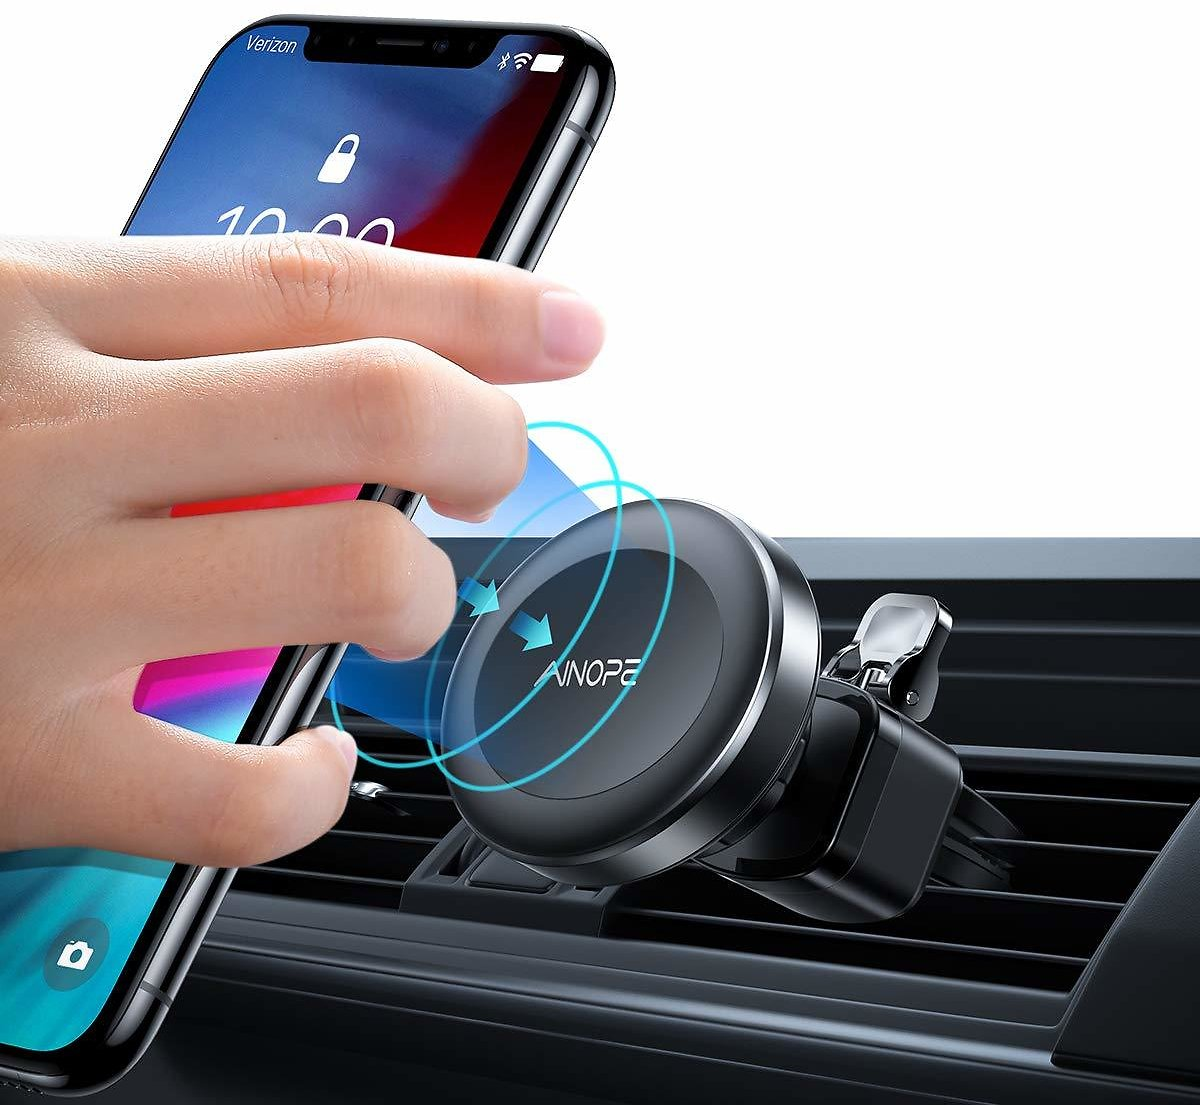 Phone Holder for Car, Upgrade 6 Strong Magnetic Car Phone Mount 360° Rotation Phone Magnet Car Mount Air Vent Phone Holder Compatible IPhone Xs MAX/XR/X/8/7, Galaxy Note 9/S10/S8/S7, IPad Air 2/Mini 3: Cell Phones & Accessories